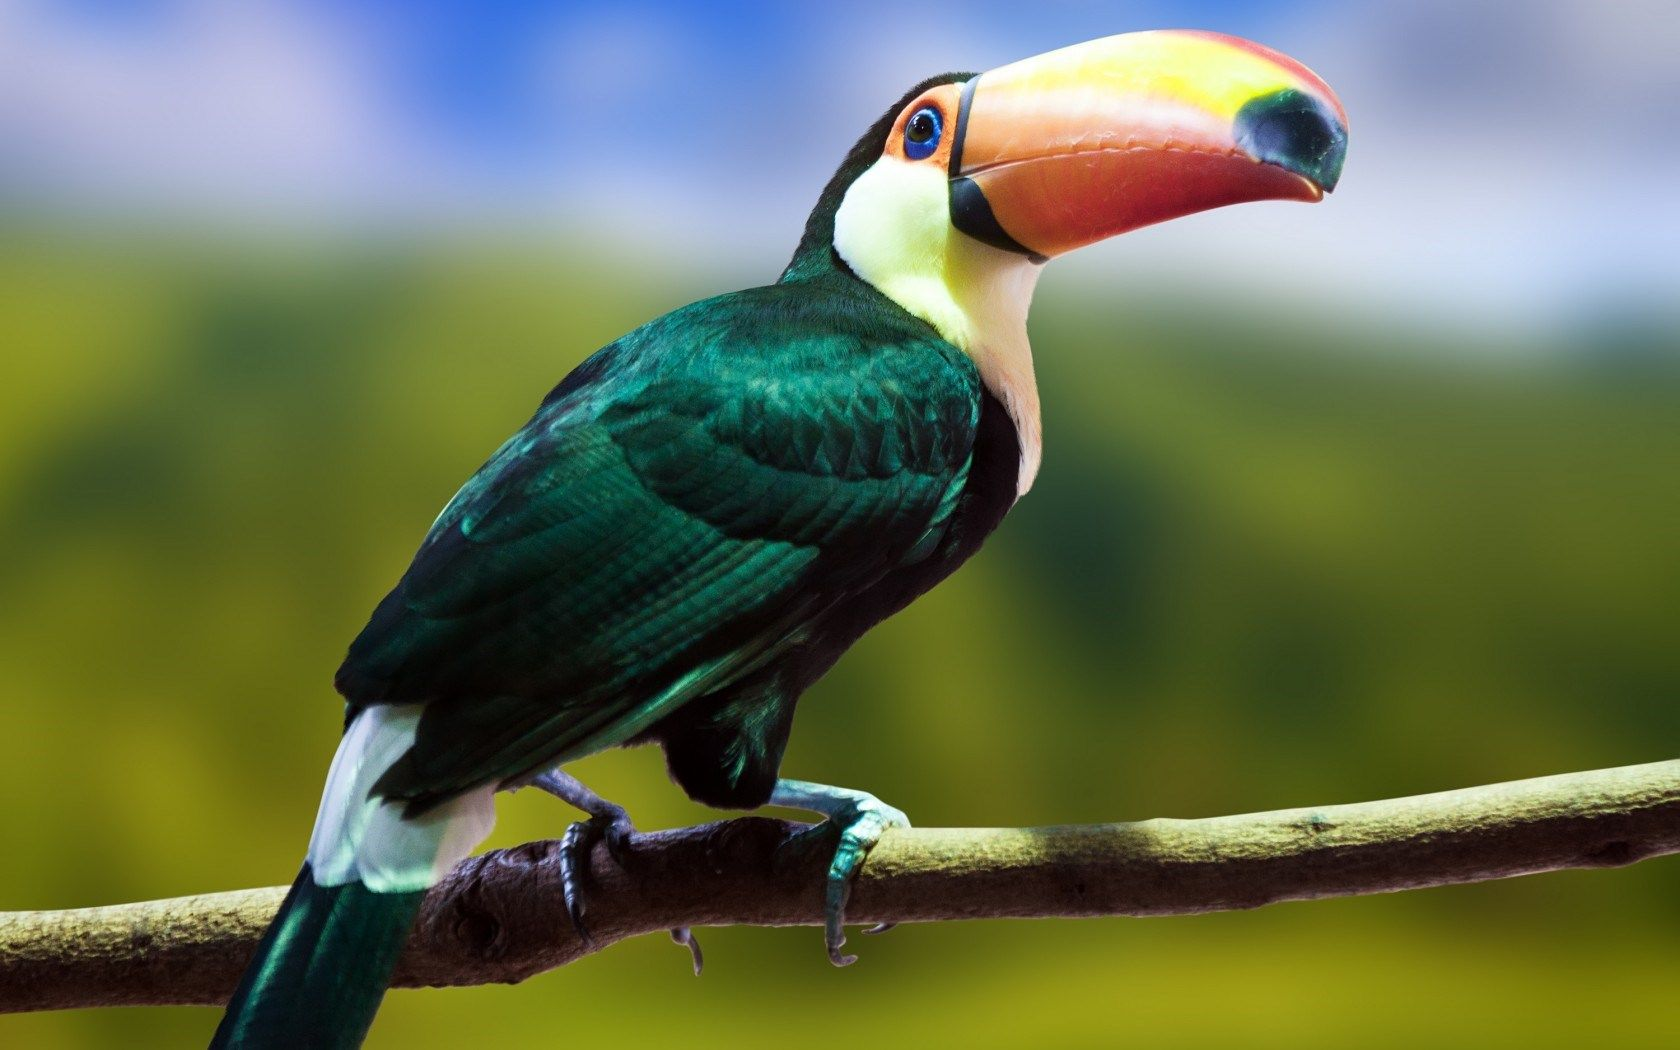 picture of a toucan bird